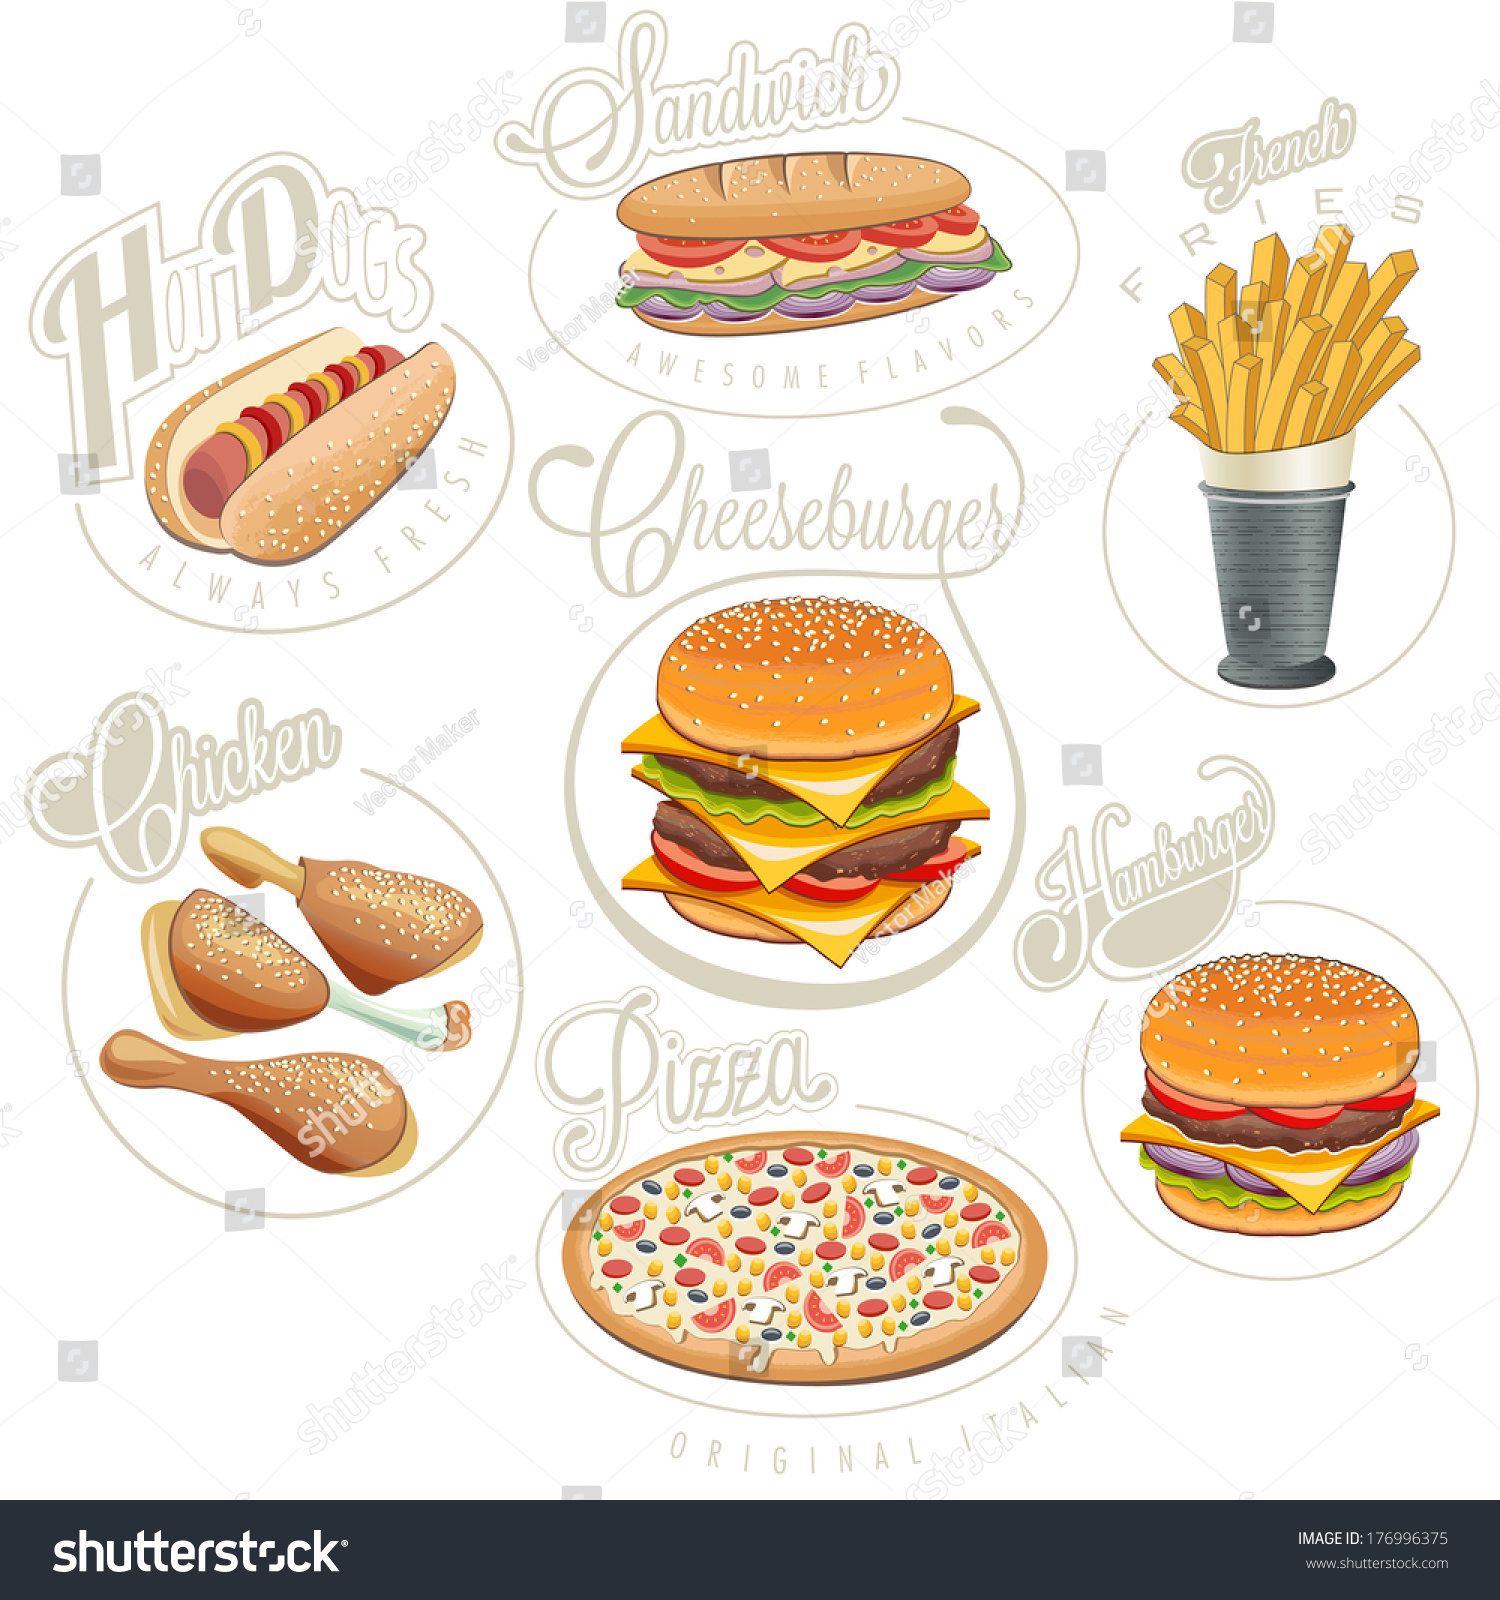 Retro Vintage Style Fast Food Designs Stock Vector Royalty Free